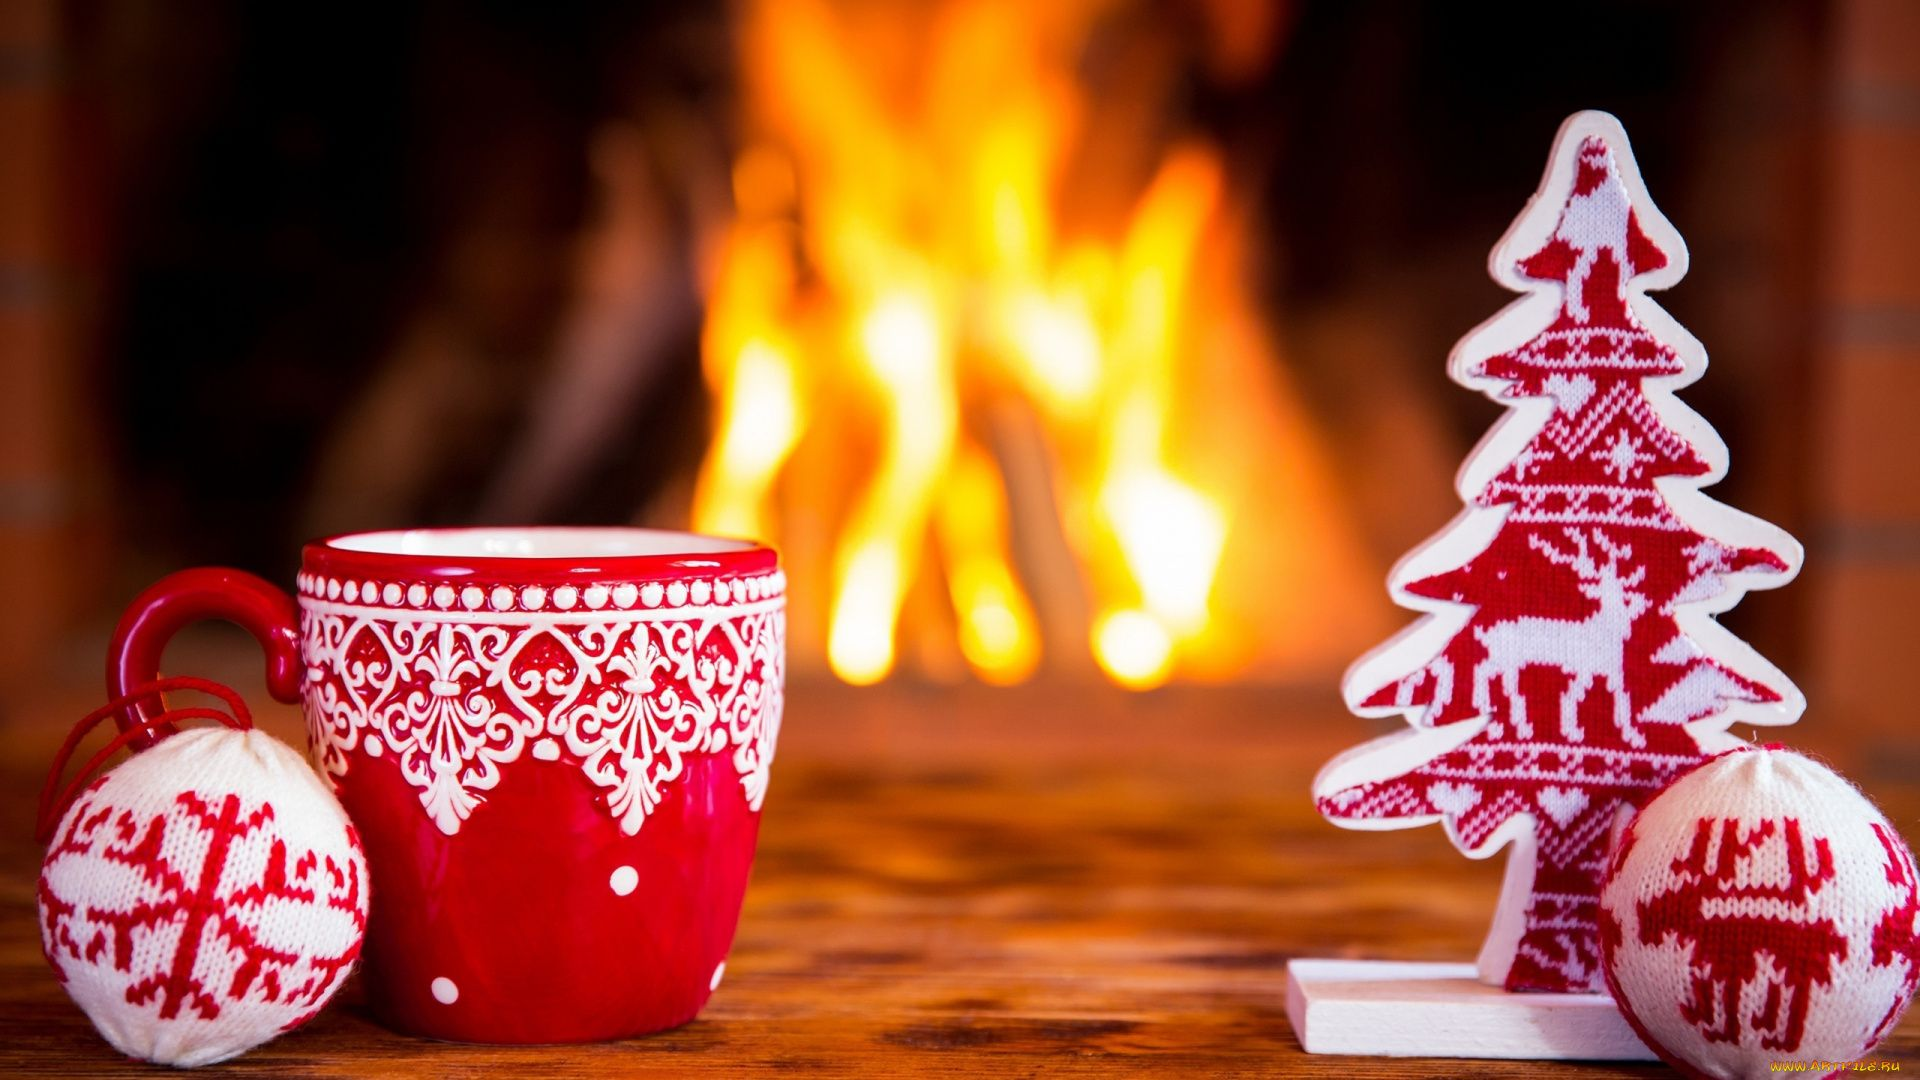 Christmas Fireplace Comfort Wallpaper Picture